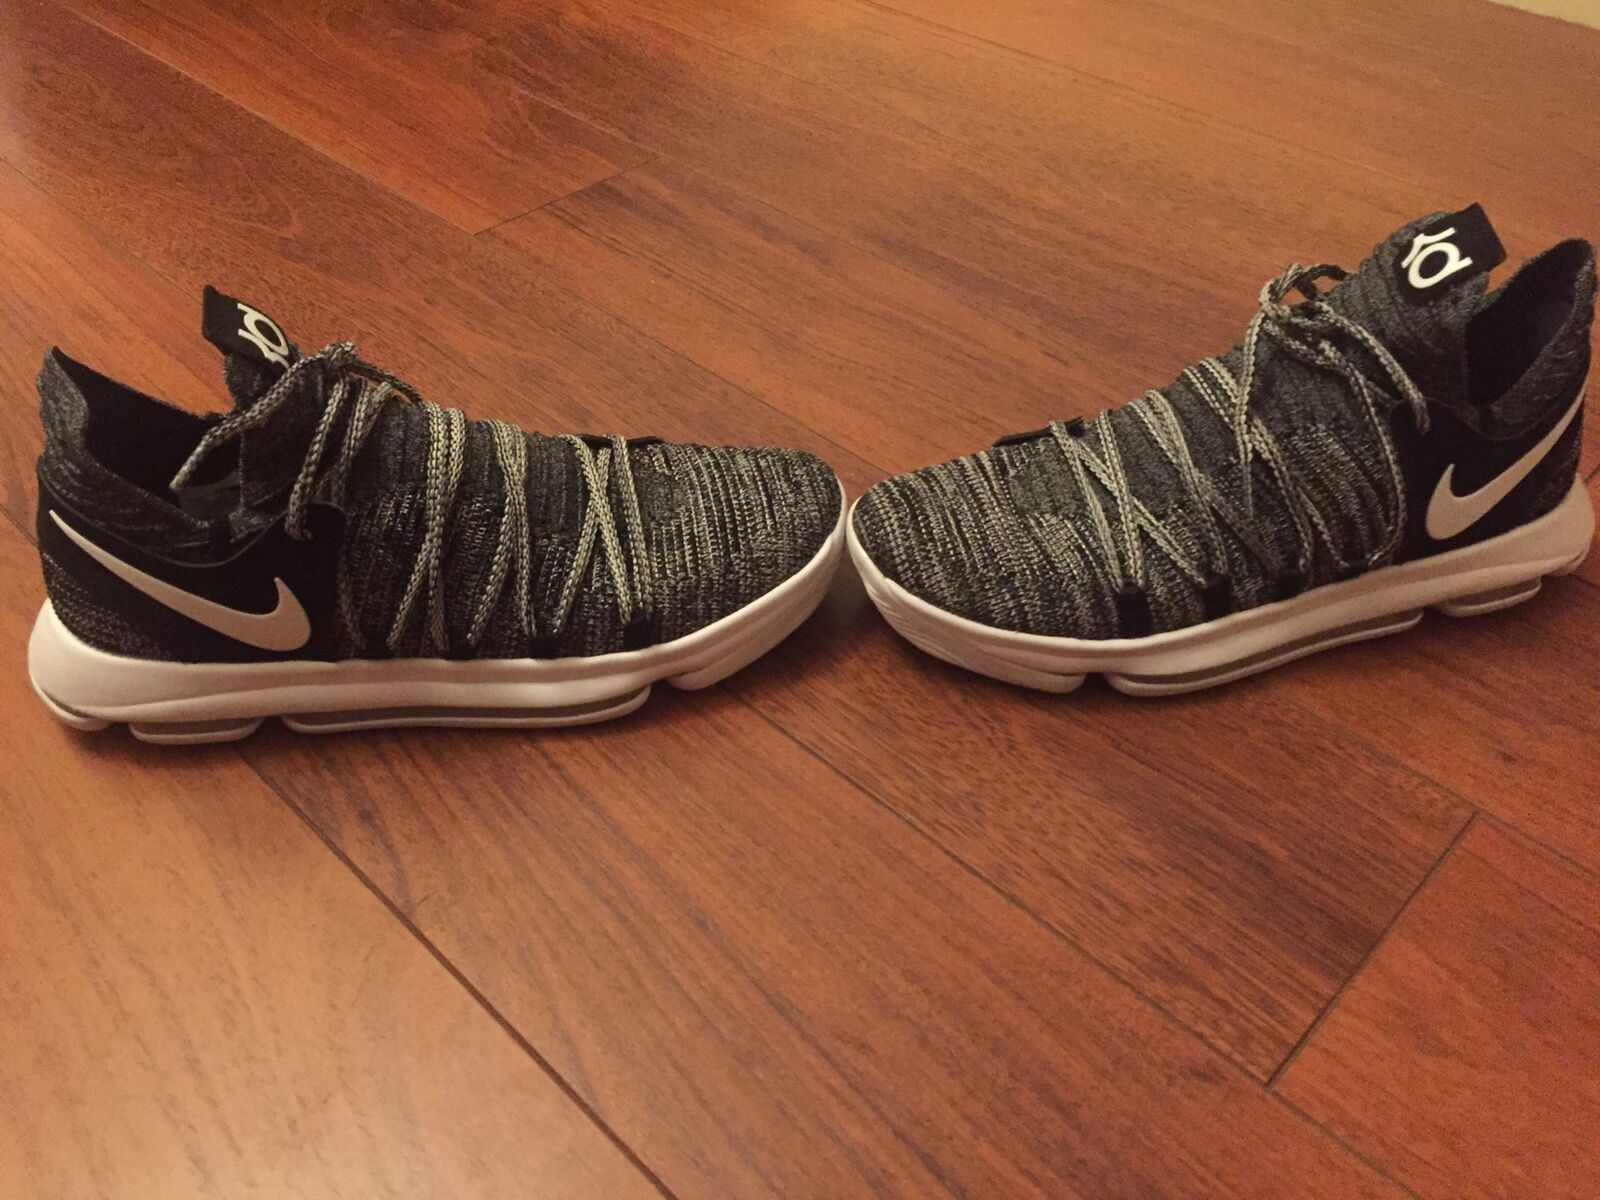 Nike Kd X Oreo Uk Size 11,5 Us Size 12,5 Eu Size 47 Without Box  Barely Used